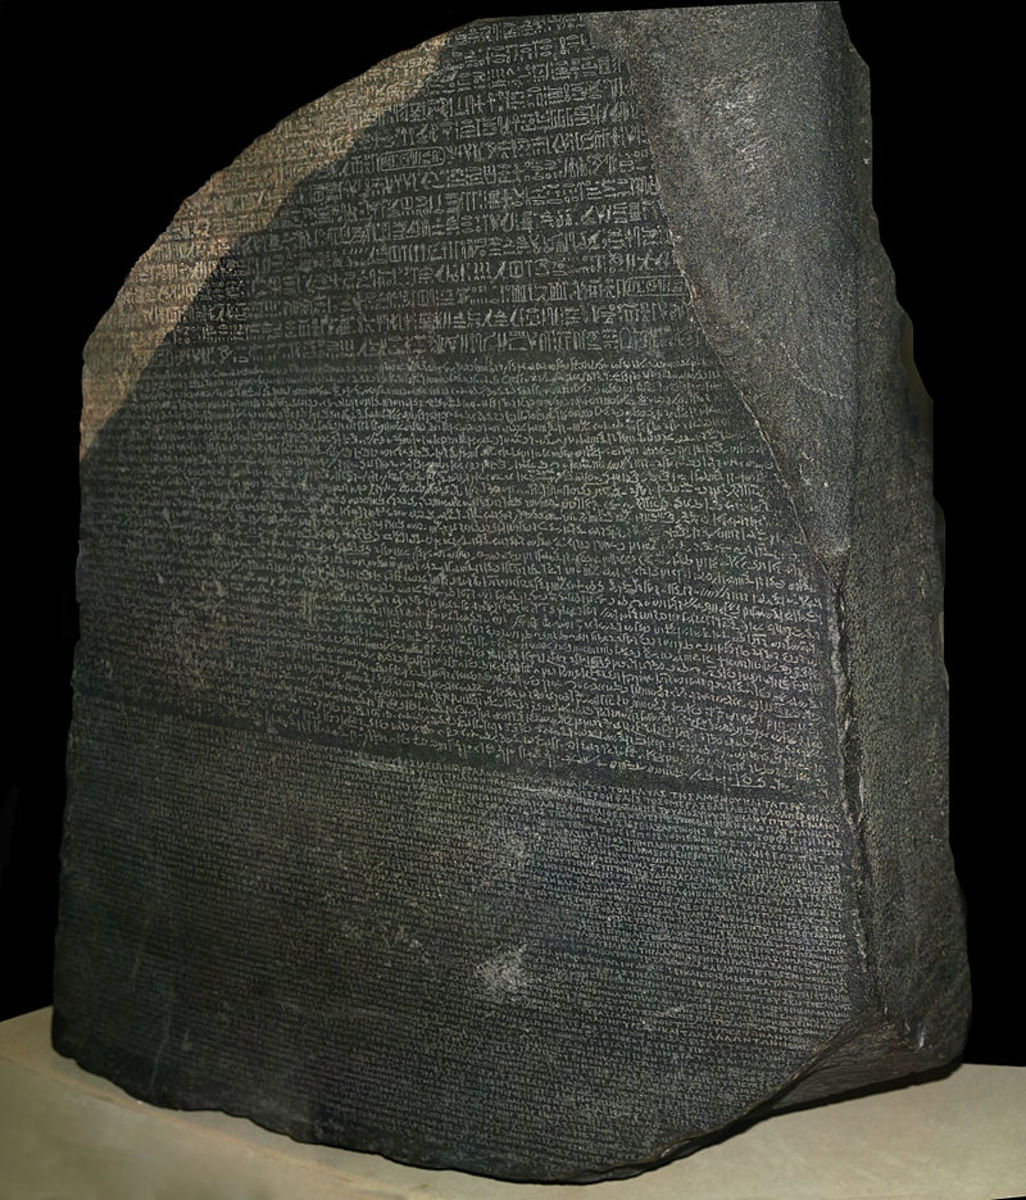 The Rosetta Stone, initially captured by French armies although taken later by the British, would be deciphered by the French and would prove key to the understanding of hieroglyphics.